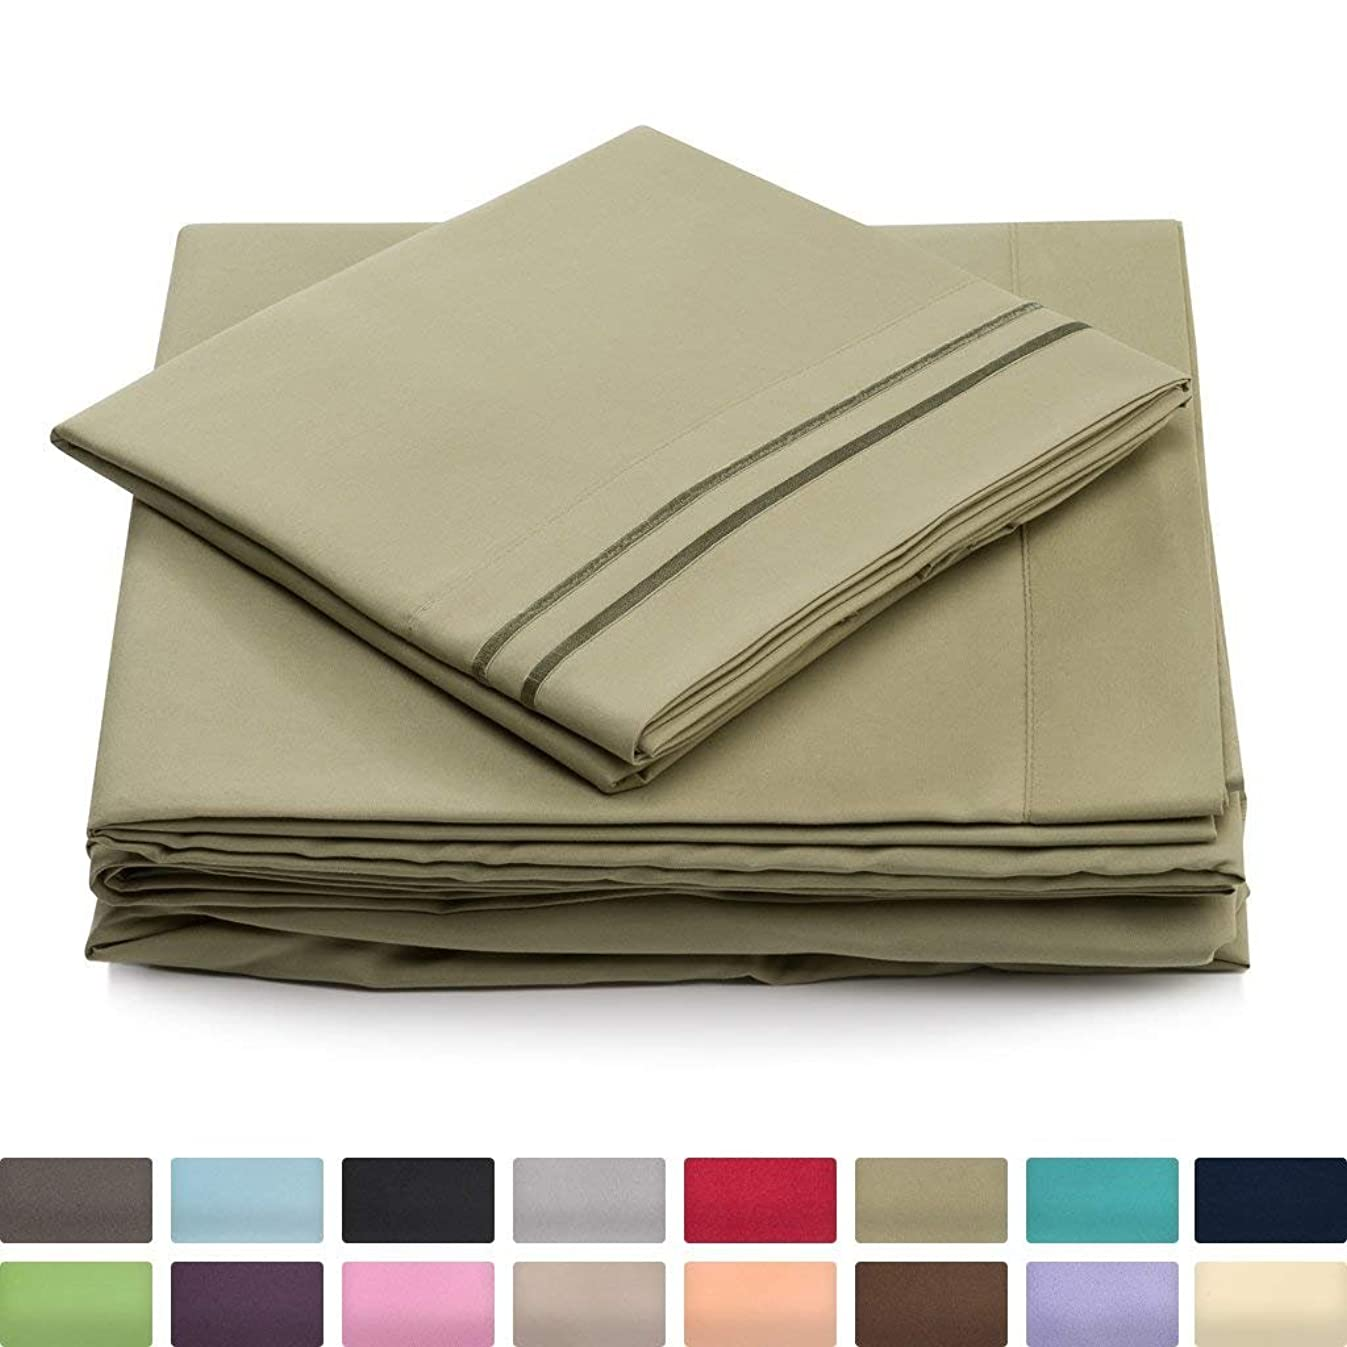 King Size Bed Sheets - Sage Green Luxury Sheet Set - Deep Pocket - Super Soft Hotel Bedding - Cool & Wrinkle Free - 1 Fitted, 1 Flat, 2 Pillow Cases - Light Green King Sheets - 4 Piece